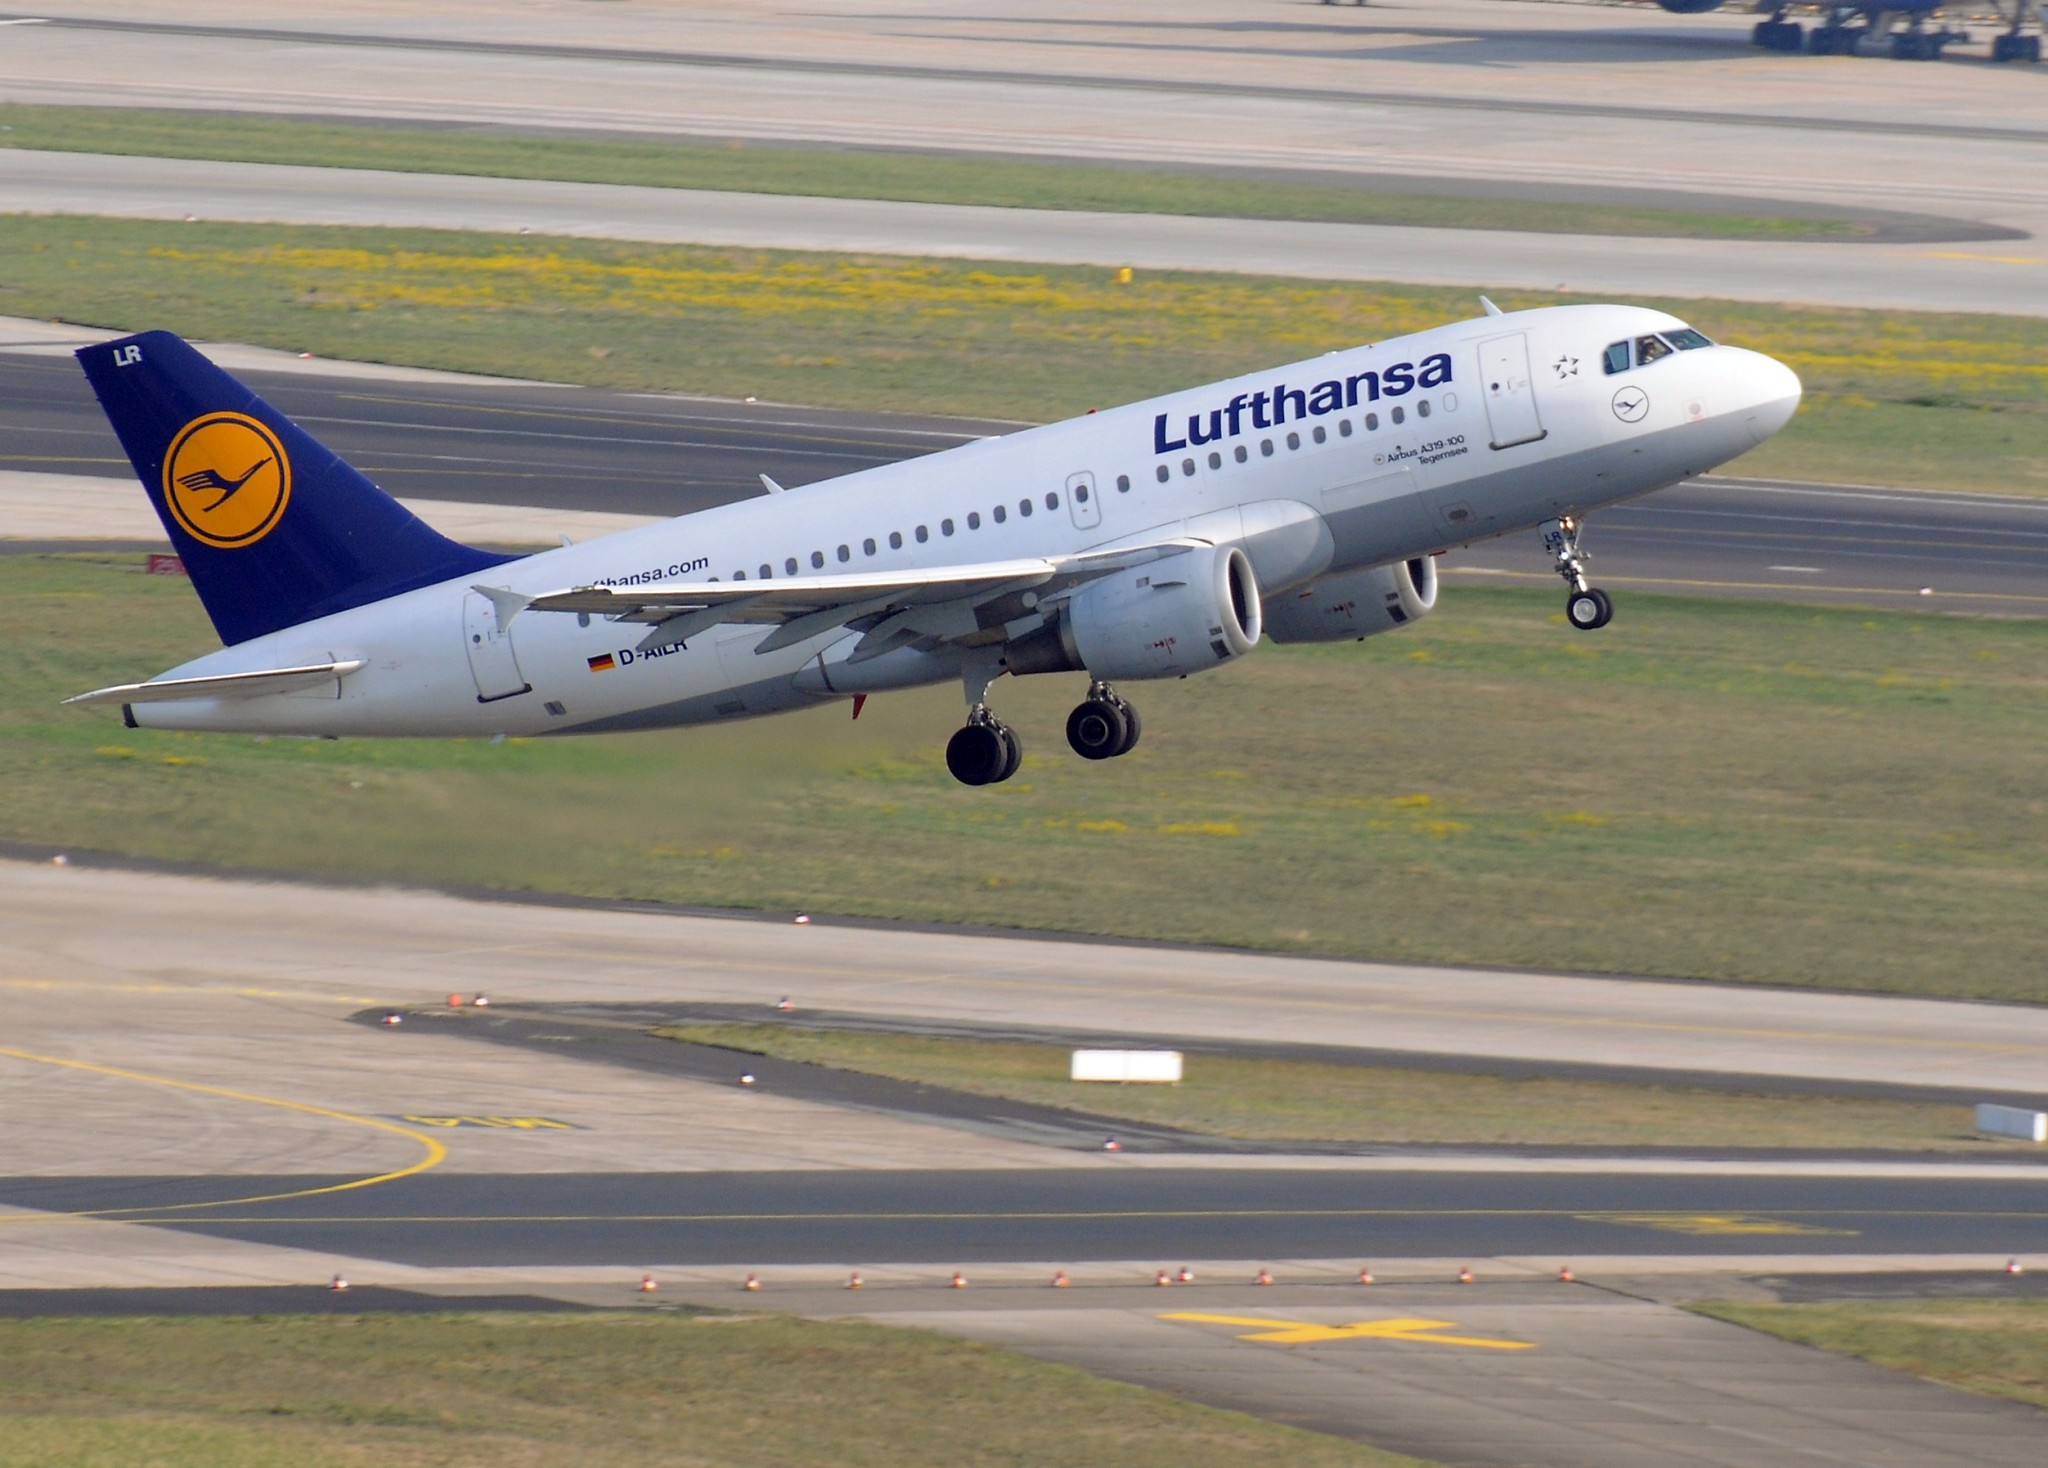 lufthansa-announces-new-shannon-frankfurt-route